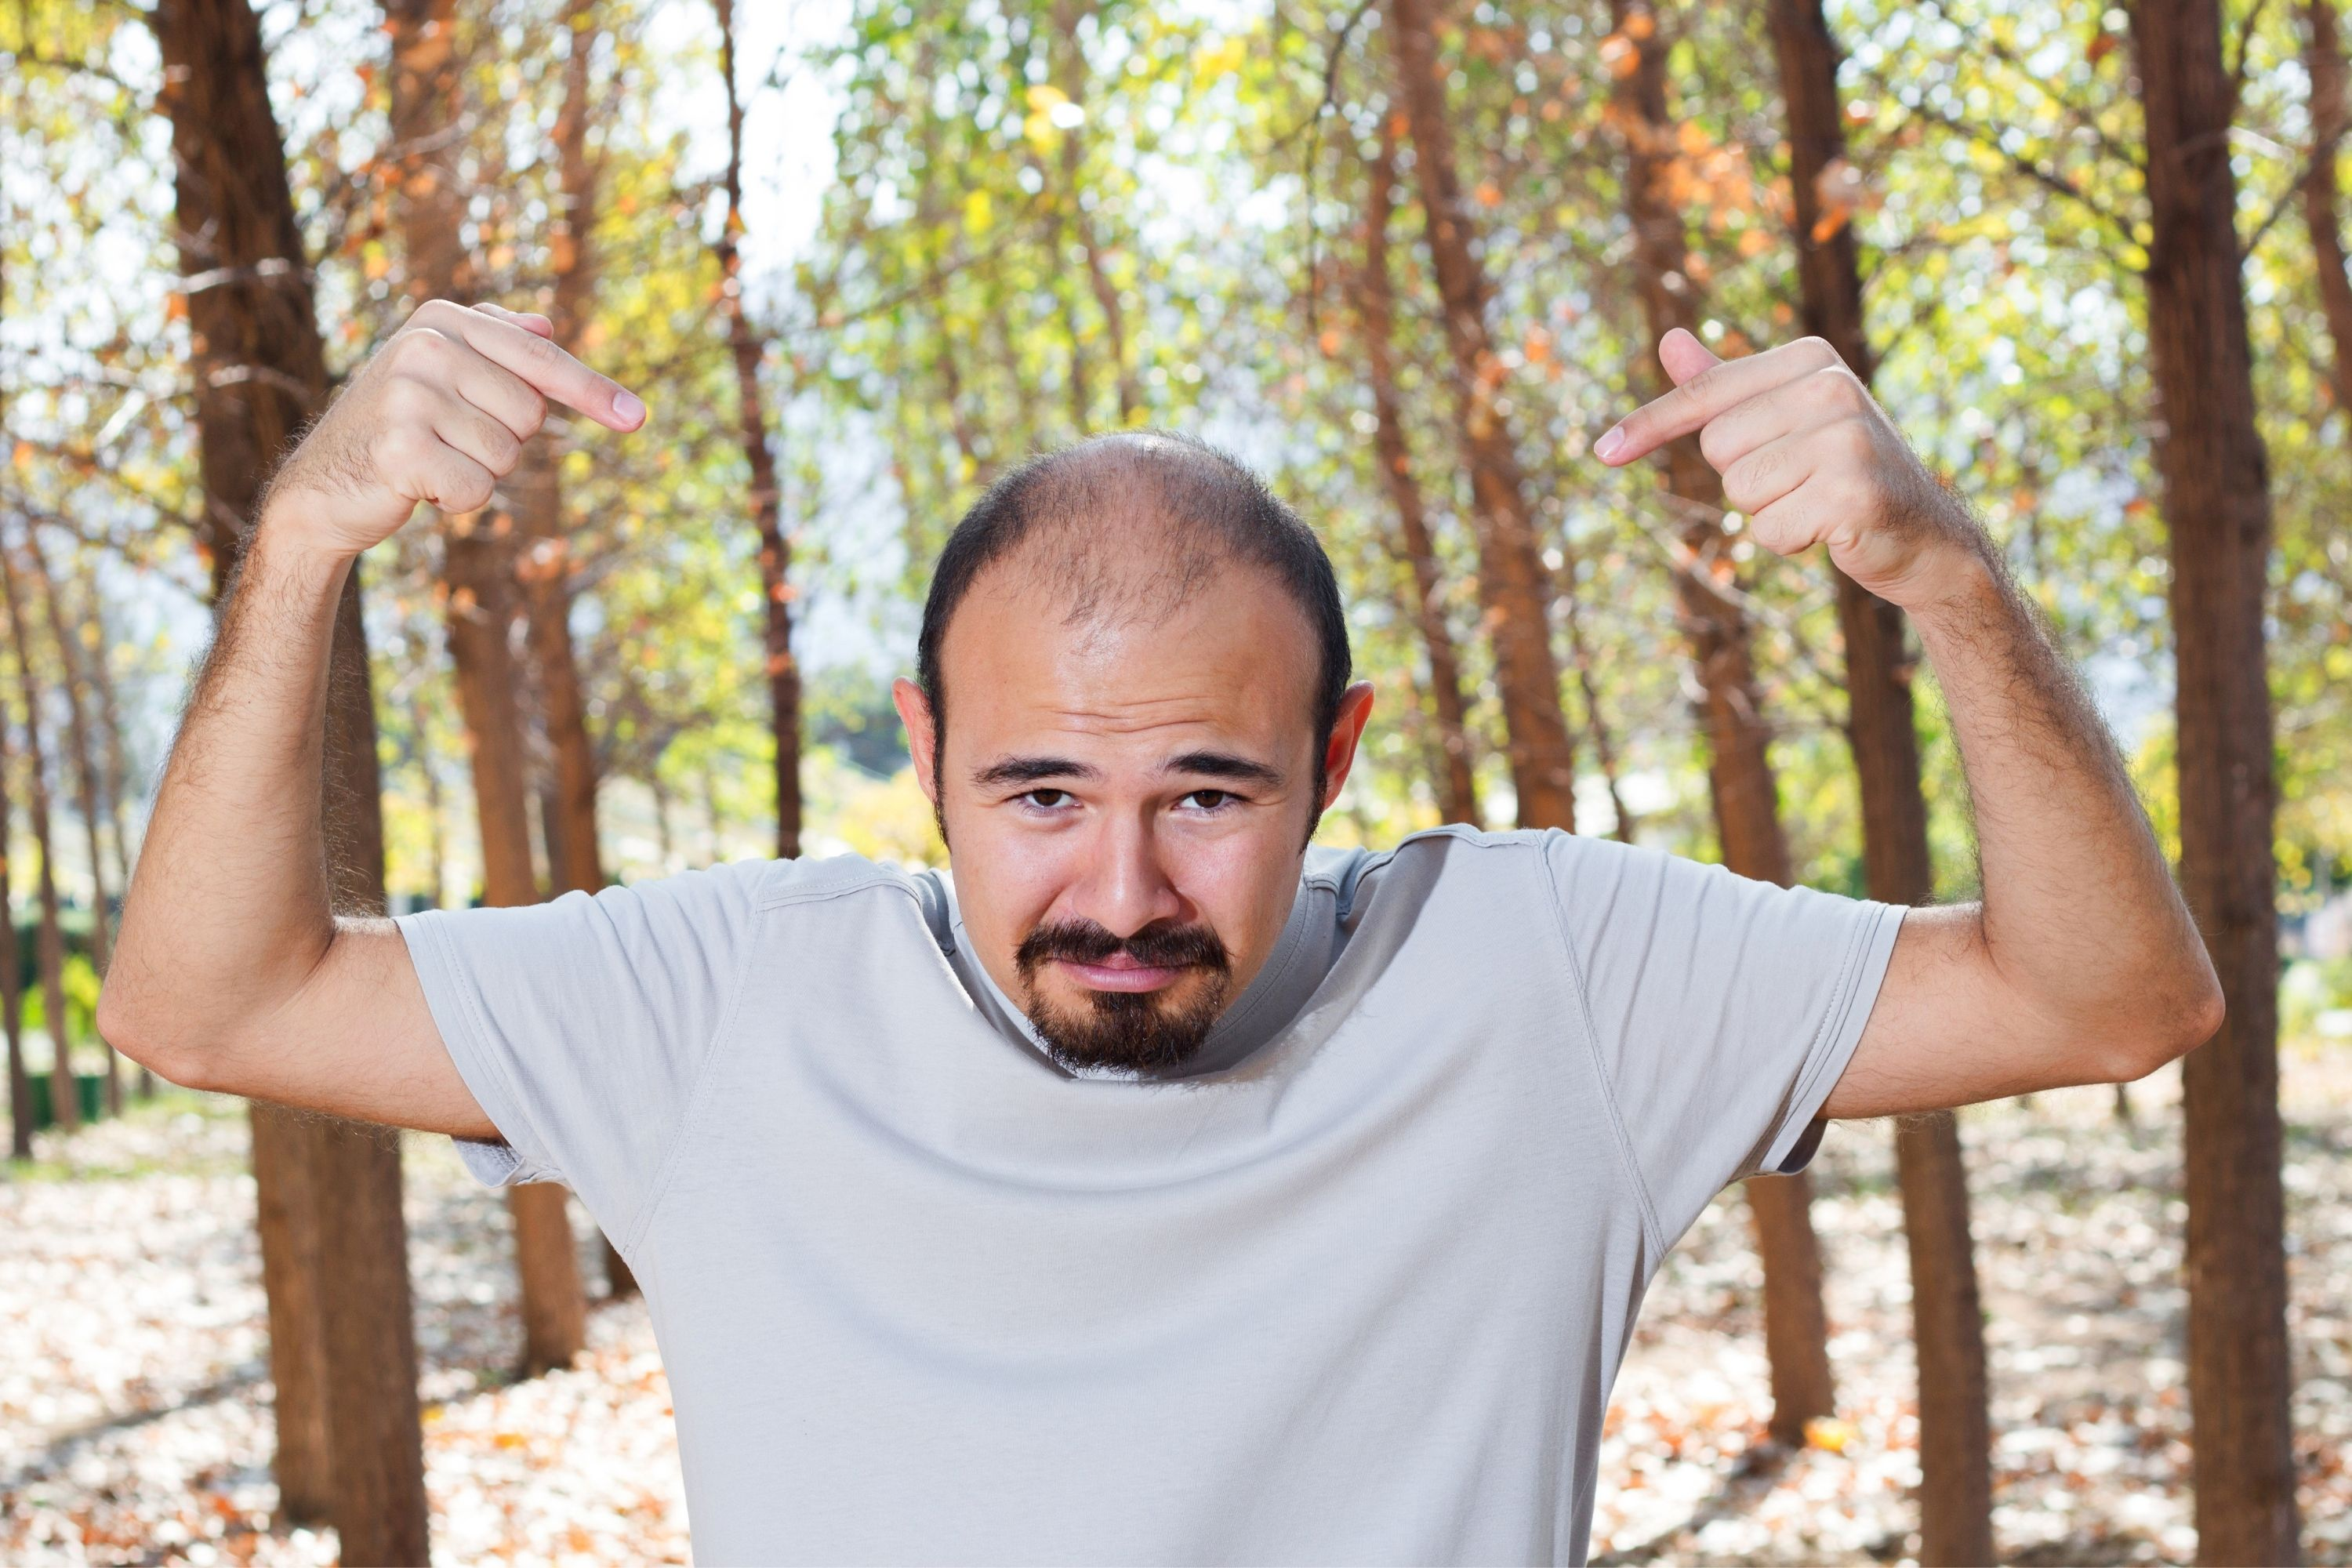 Medications That Can Cause Baldness